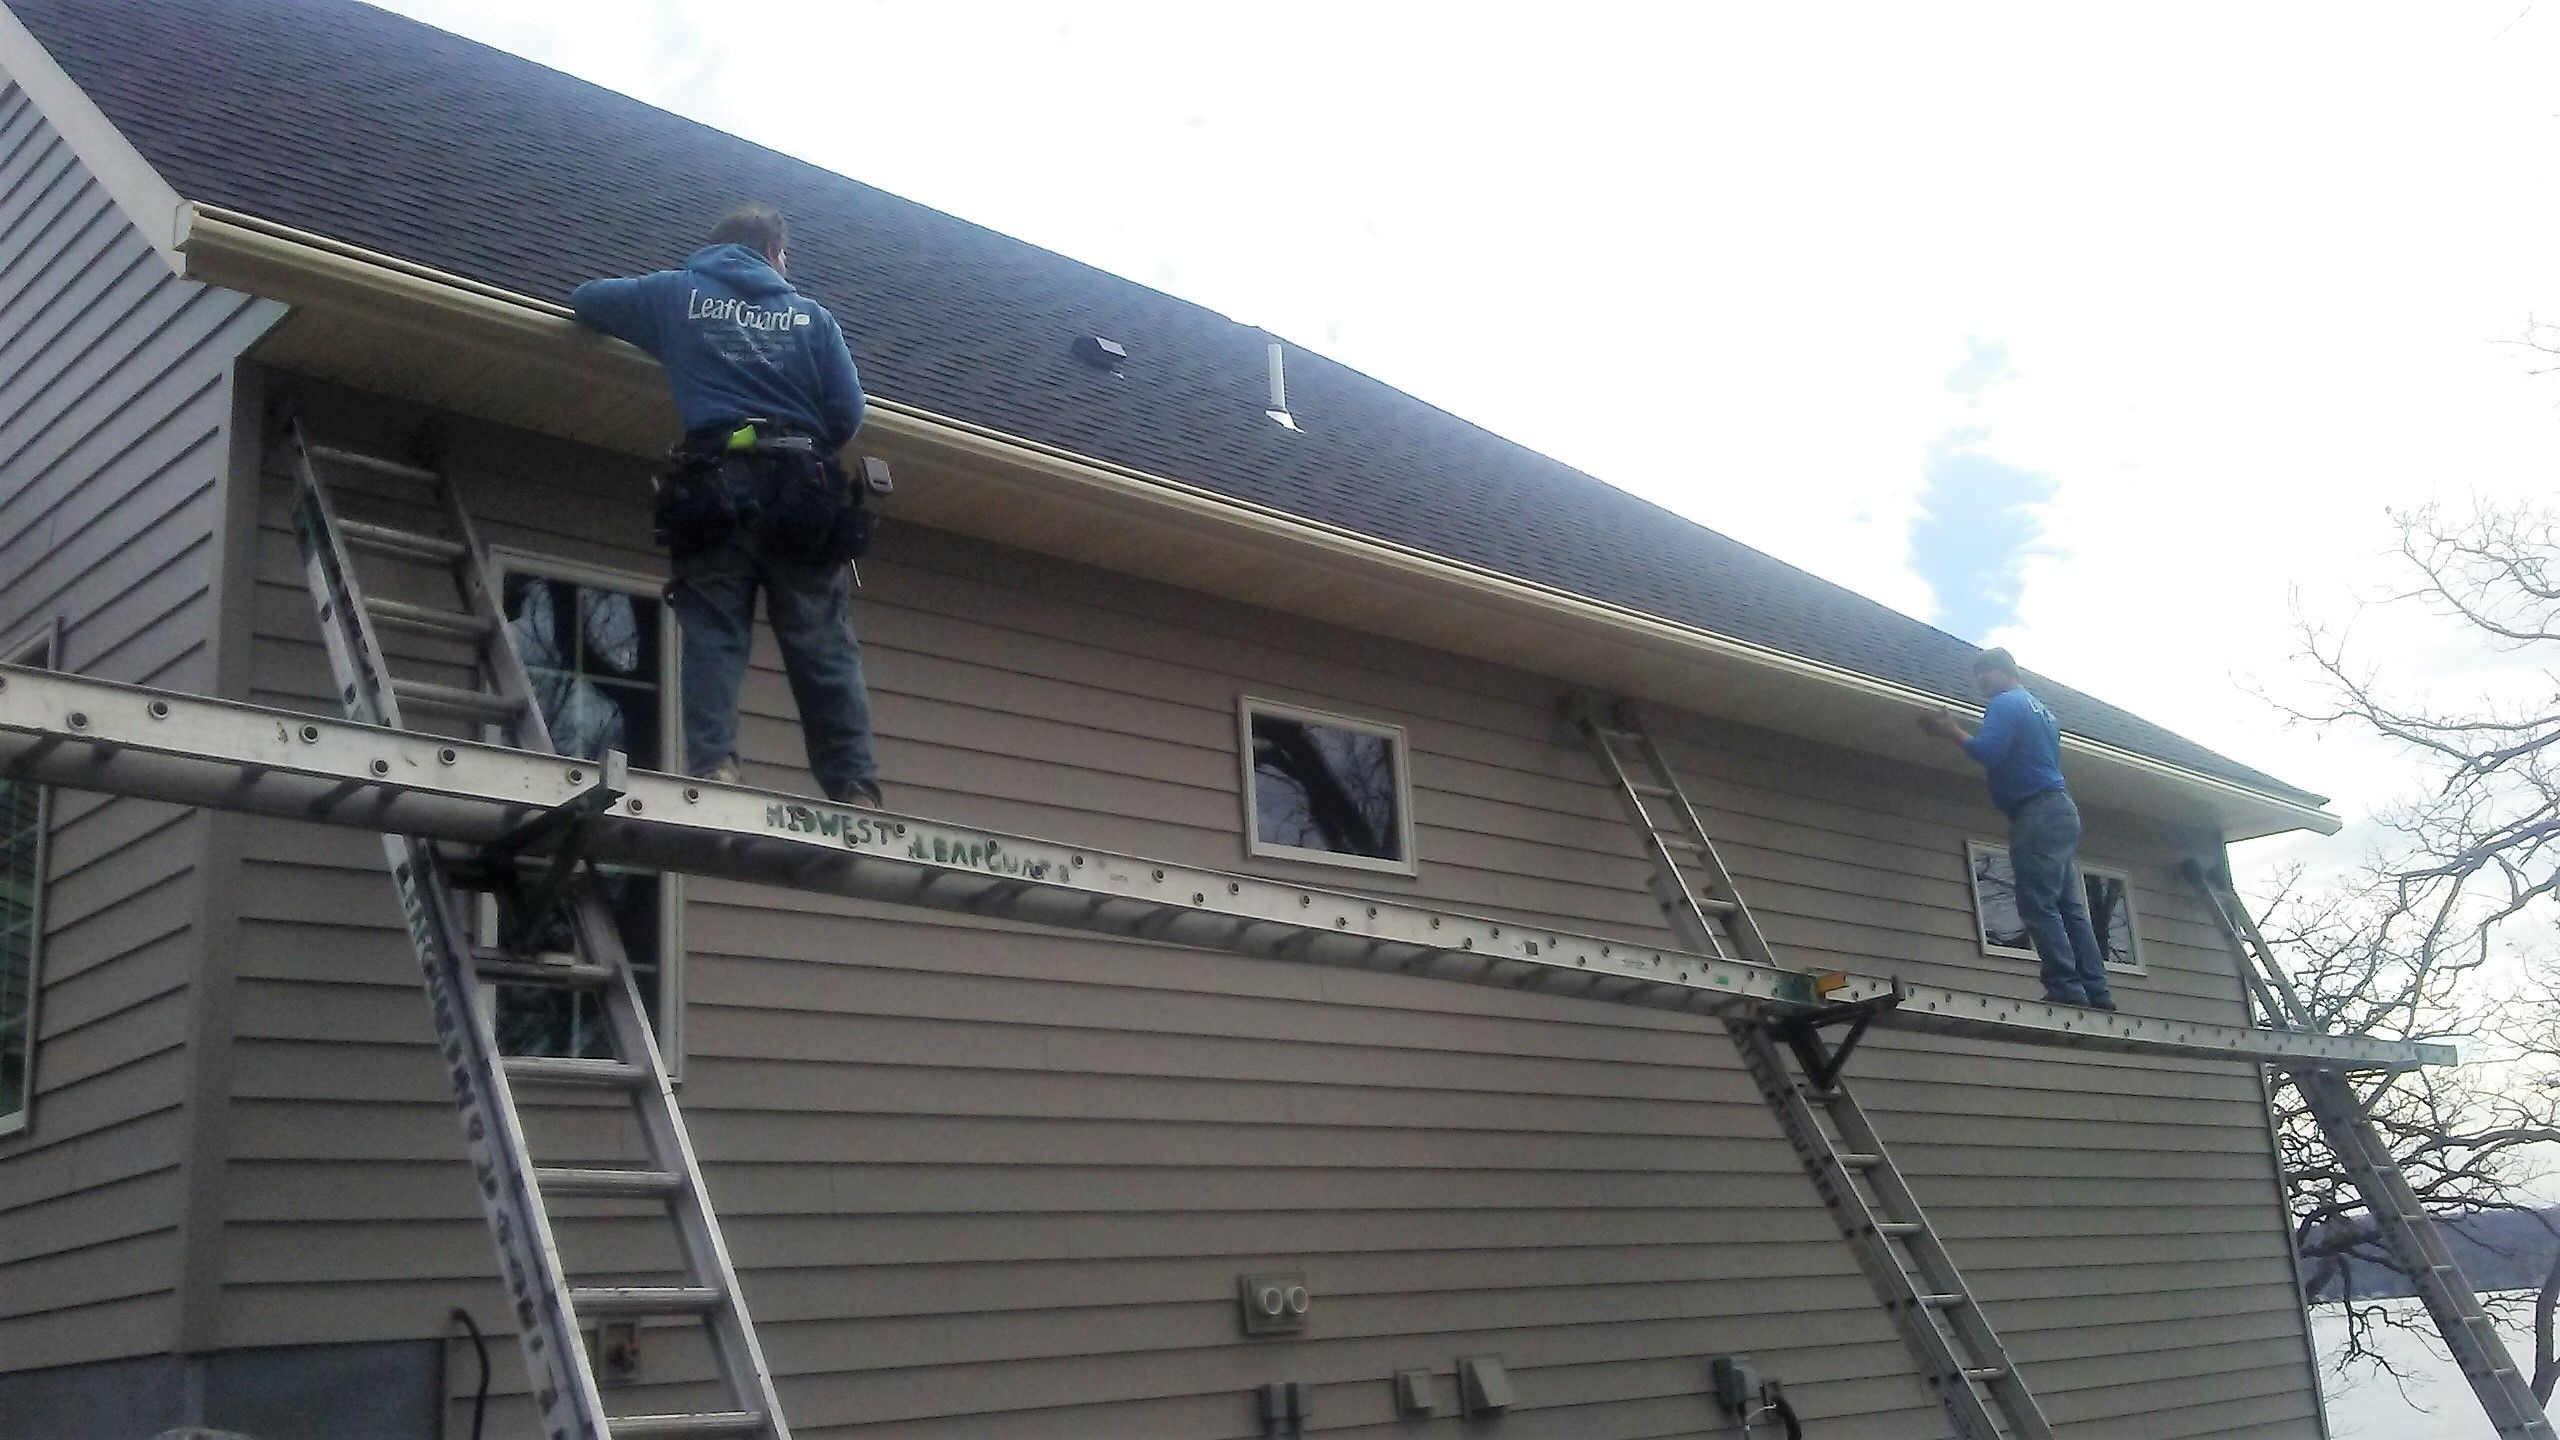 Safety During The Installation Process Is A Top Priority Our Crew Sets Up Support Ladders And A Secure Plank So We Ca Seamless Gutters Gutters Gutter Services